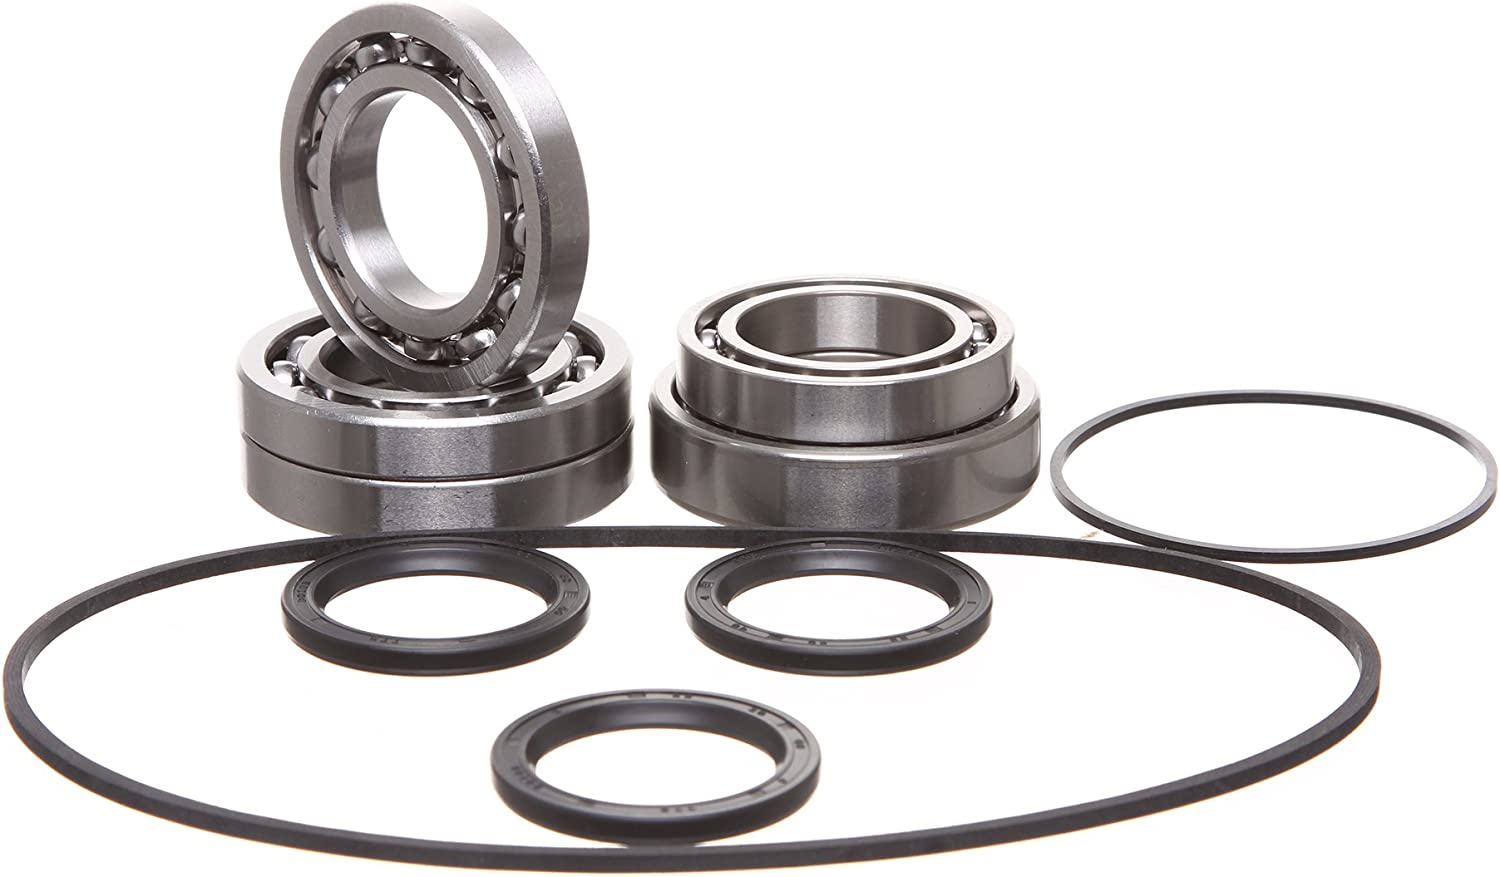 NEW ALL BALL FRONT Differential Diff Bearing /& Seal Rebuild Kit Polaris RZR 800